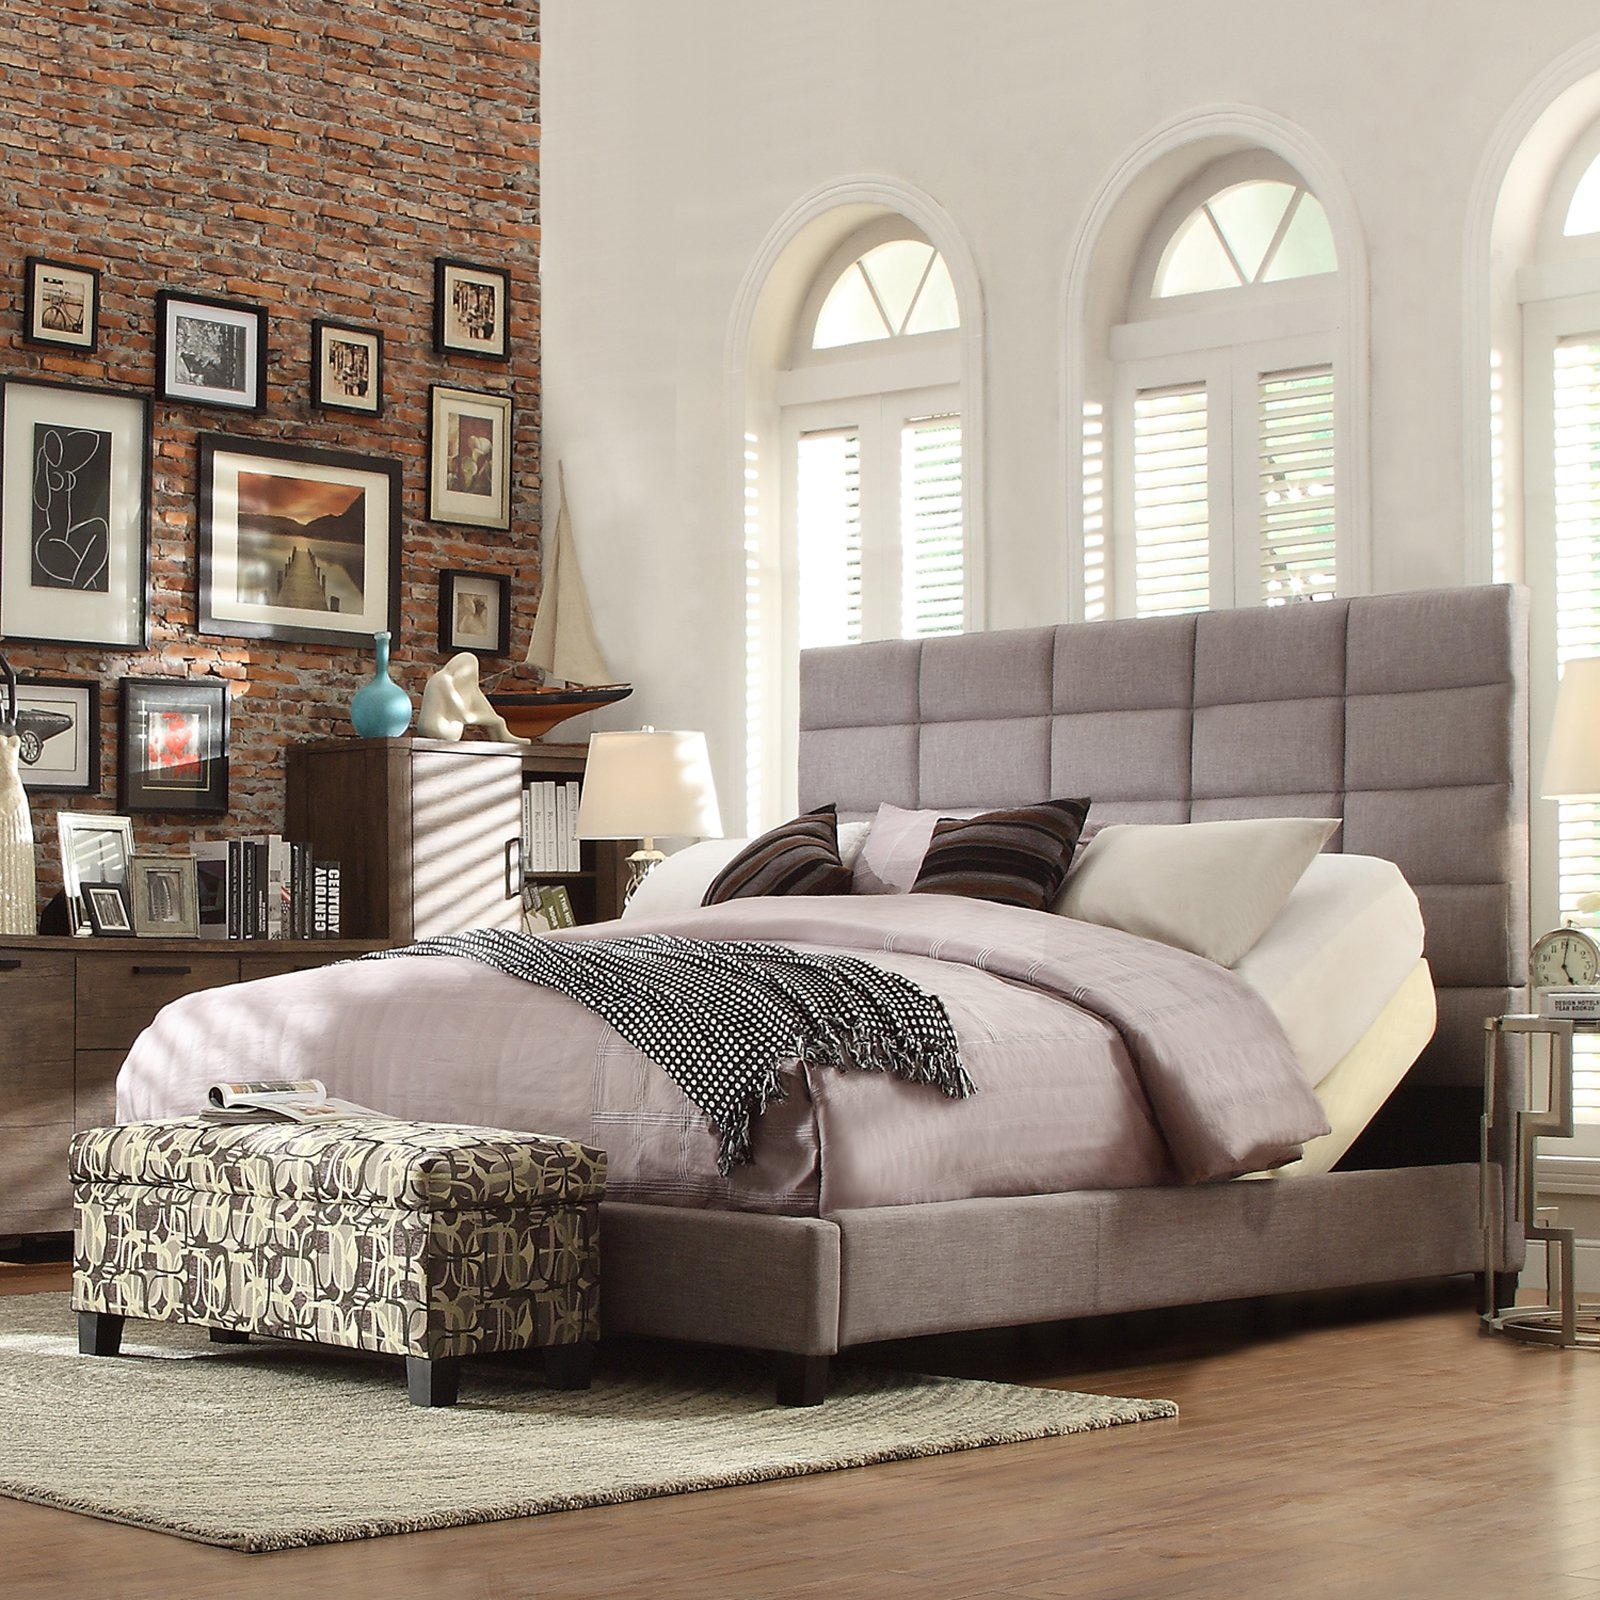 Chelsea Lane Inspire Q Willow Upholstered Low Profile Bed